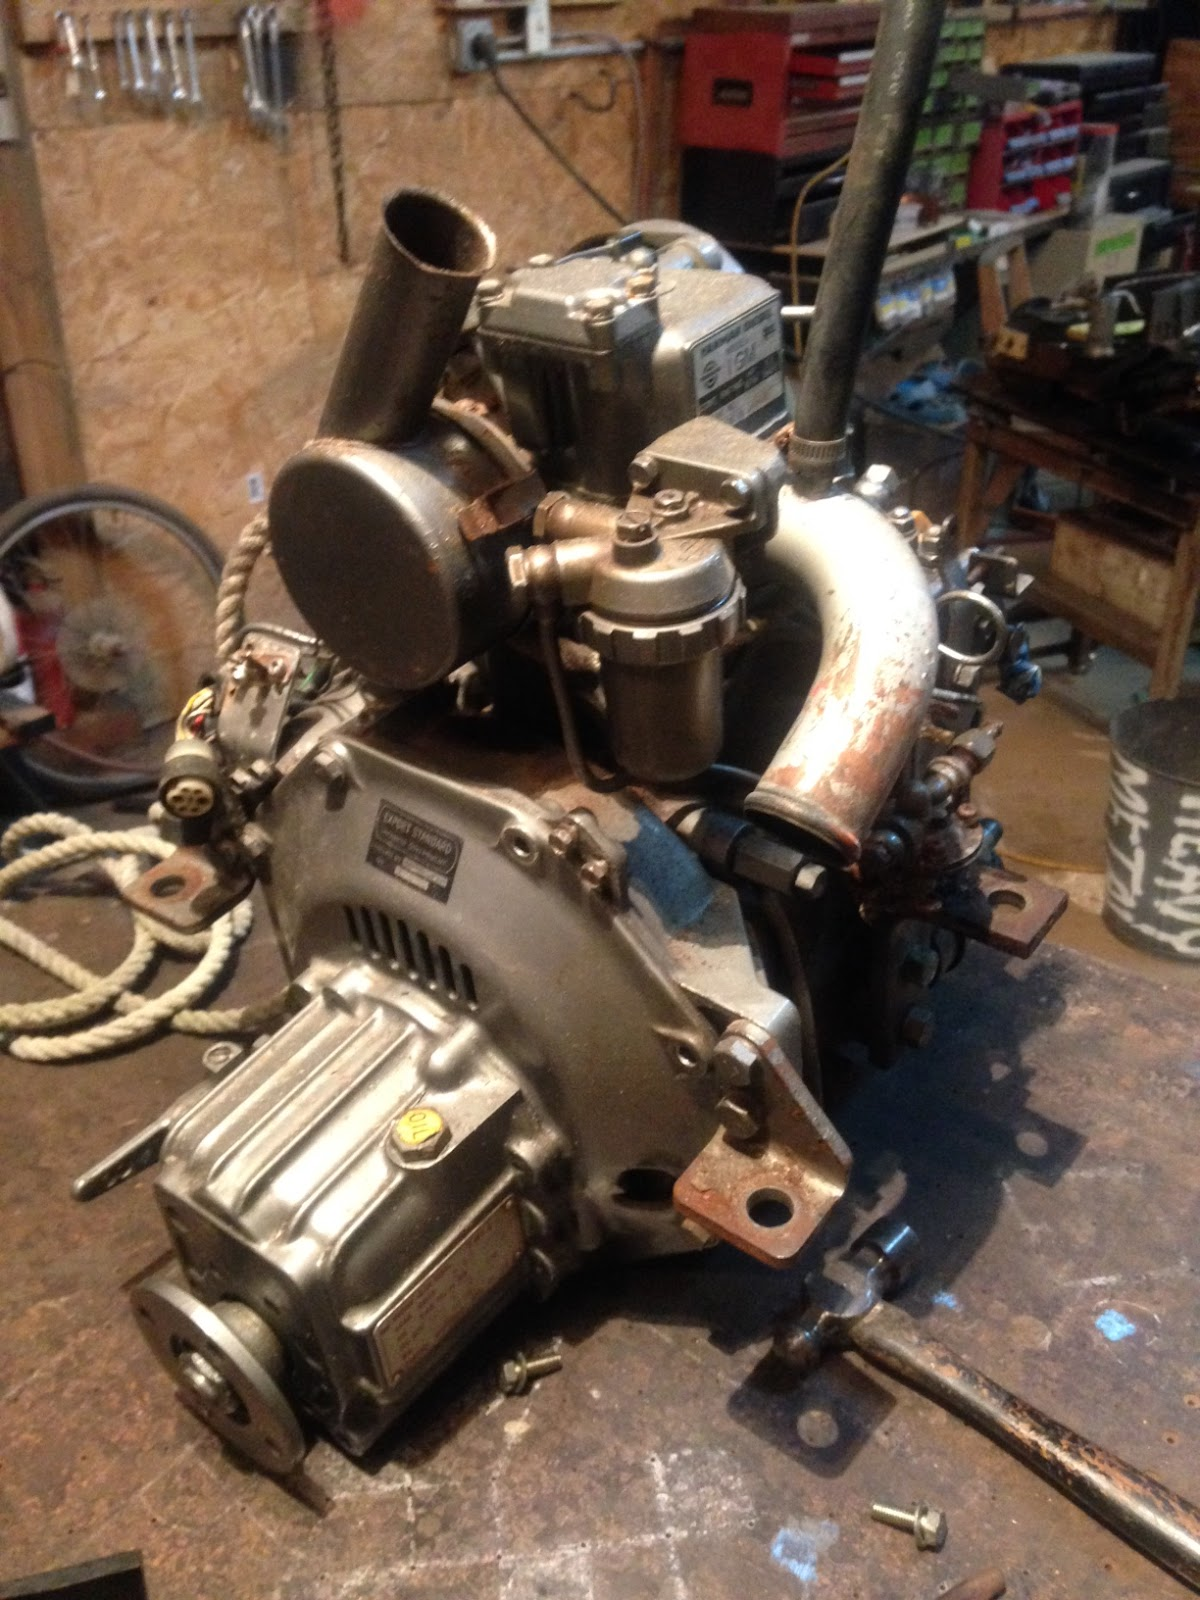 Diy Diesel Injector Maintenance Sailfeed Yanmar 2gm Engine Wiring Diagram 1gm From The 1980s And Since Its Such A Small Light Simple I Decided To Pull Whole Thing Do Partial Rebuild In My Shop